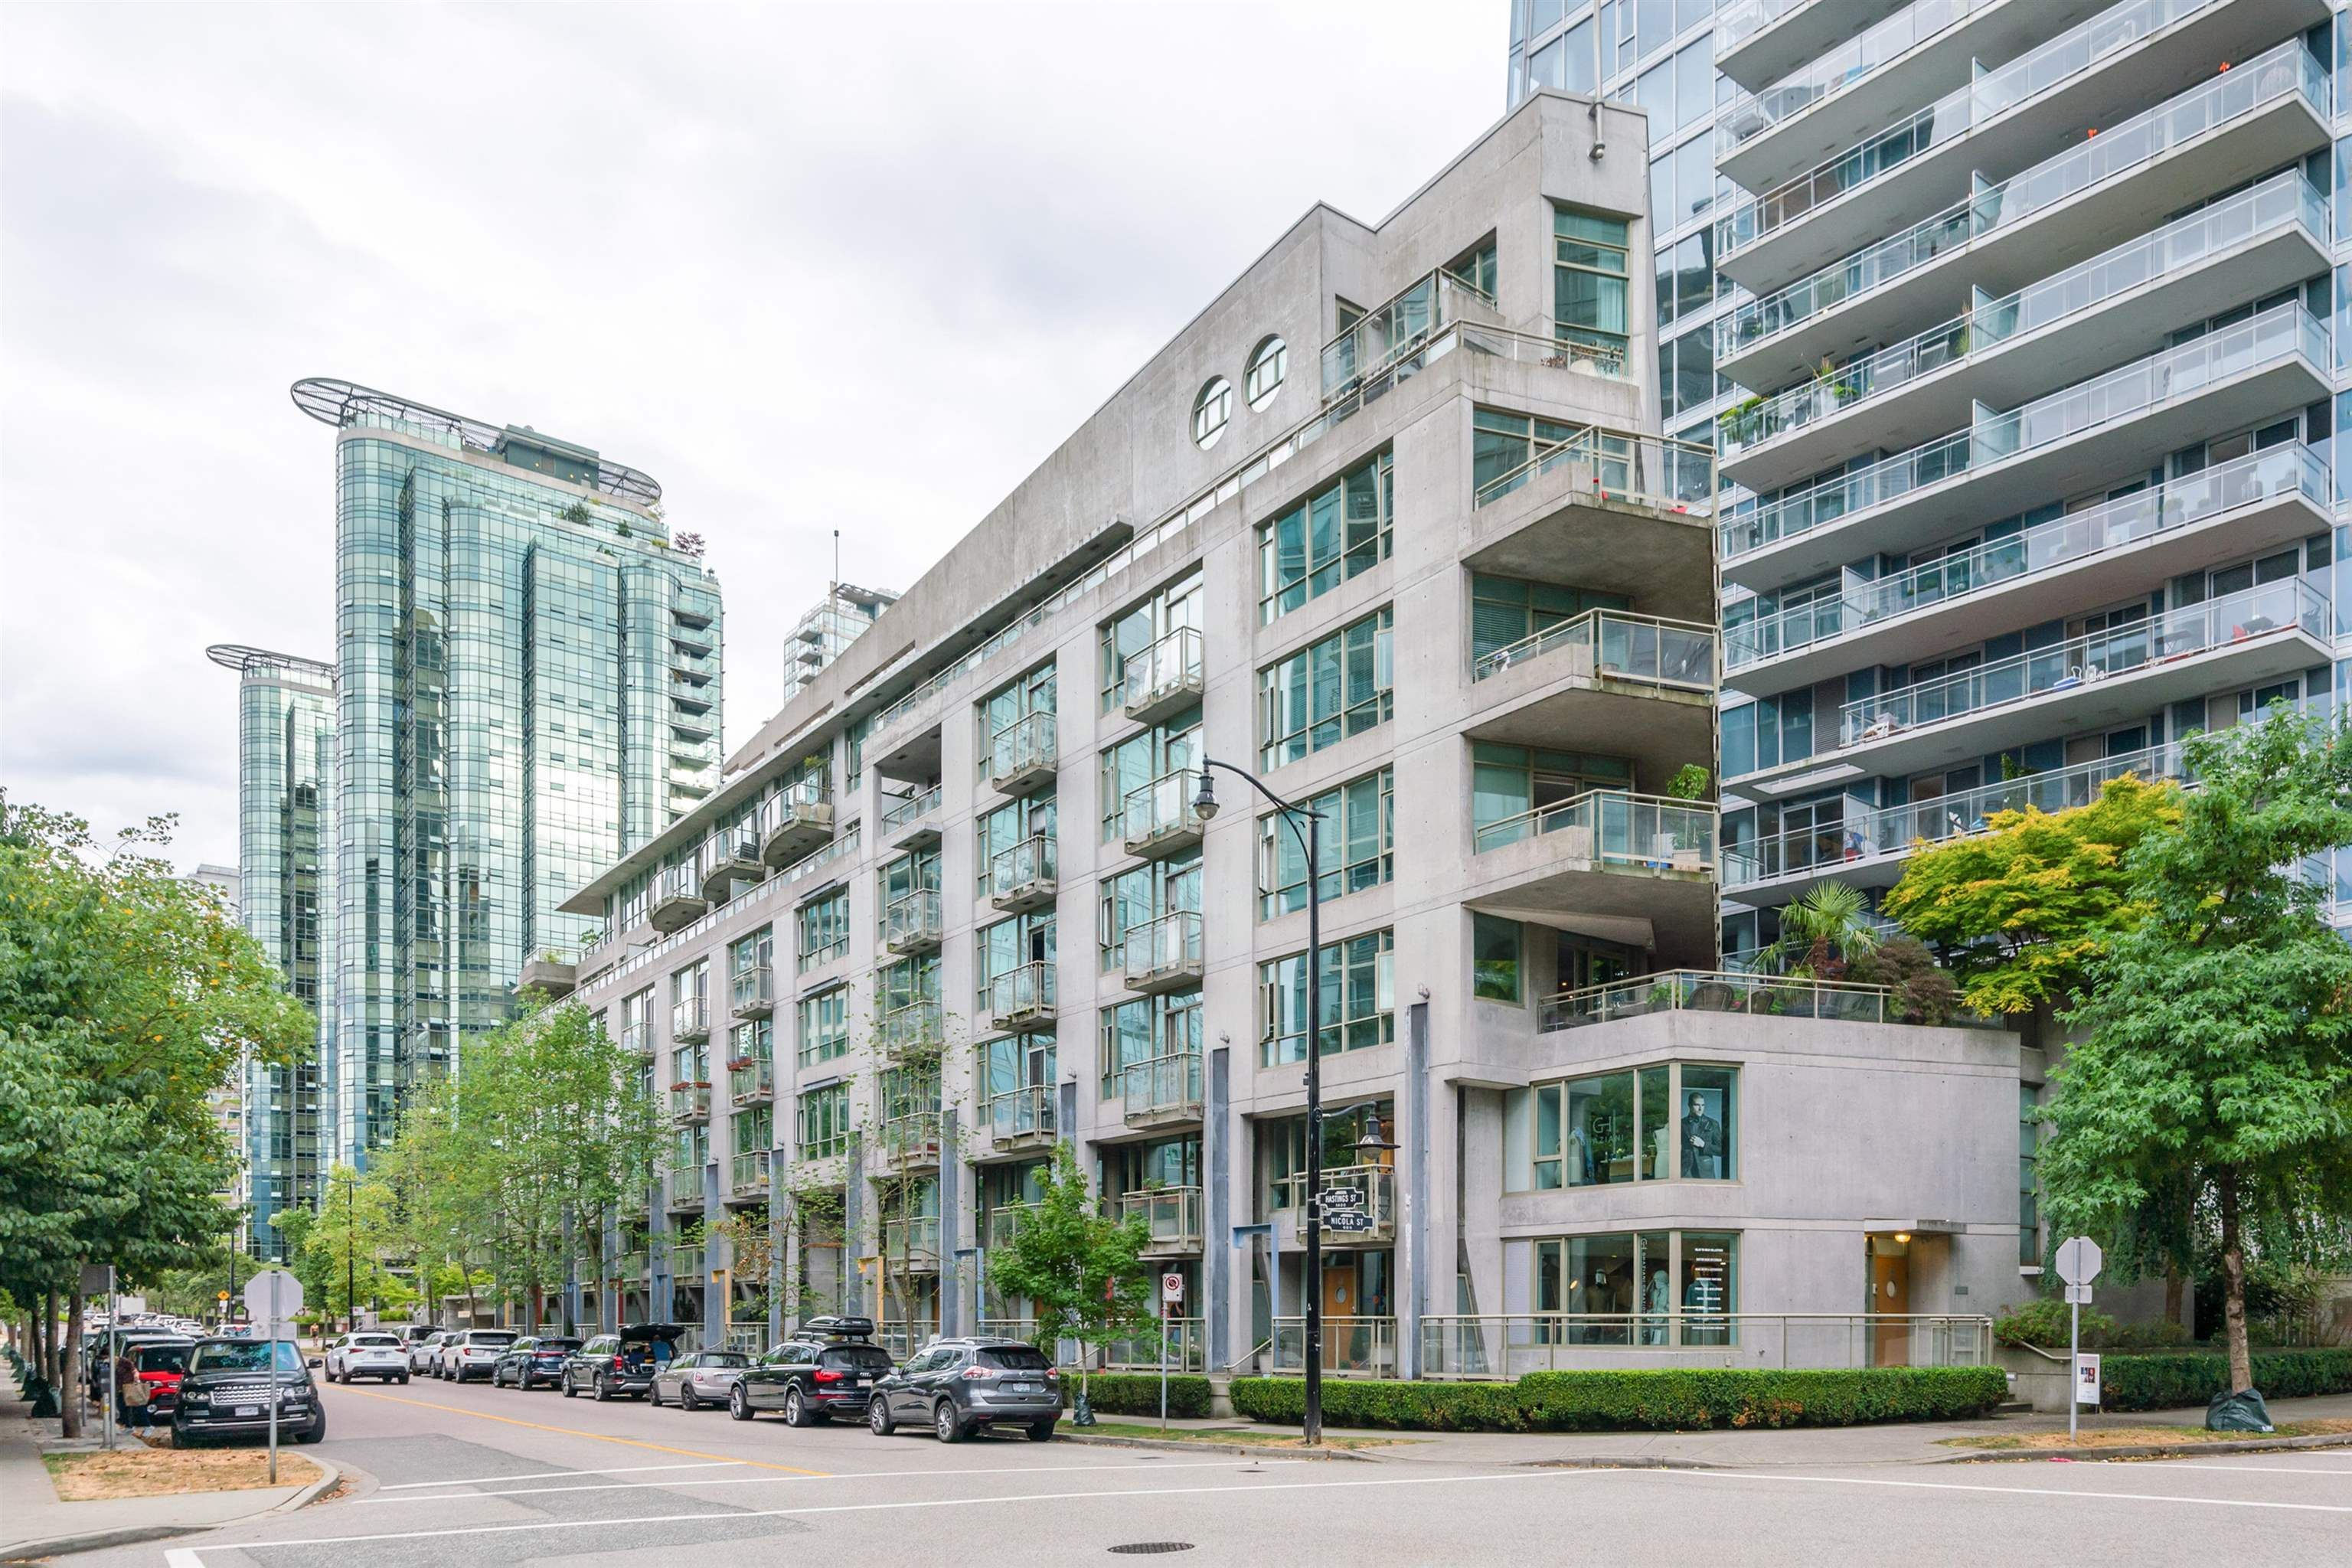 Main Photo: 1486 W HASTINGS Street in Vancouver: Coal Harbour Office for sale (Vancouver West)  : MLS®# C8039812